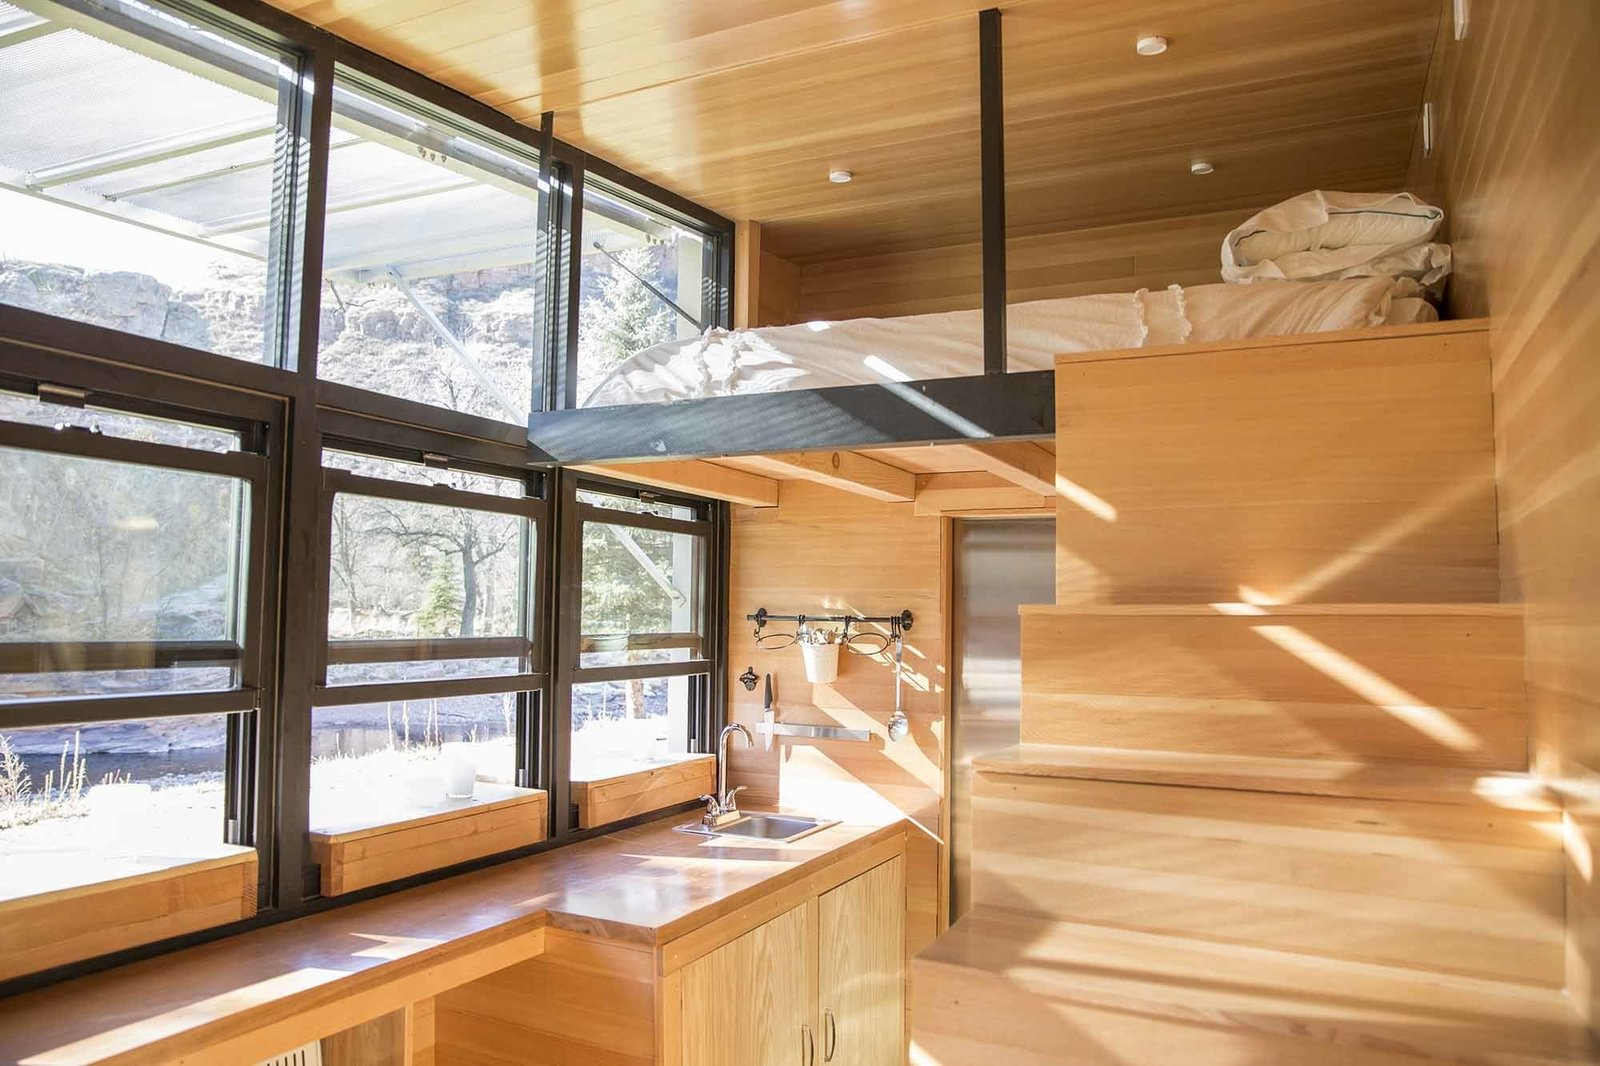 With a built-in sofa and sleeping loft, ATLAS can accommodate three adult travelers. Tagged: Kitchen, Wood Counter, and Wood Cabinet.  Clever Loft Spaces for Small Places by Diana Budds from A Tiny Trailer Home Harvests Solar Power and Rainwater to Save Energy